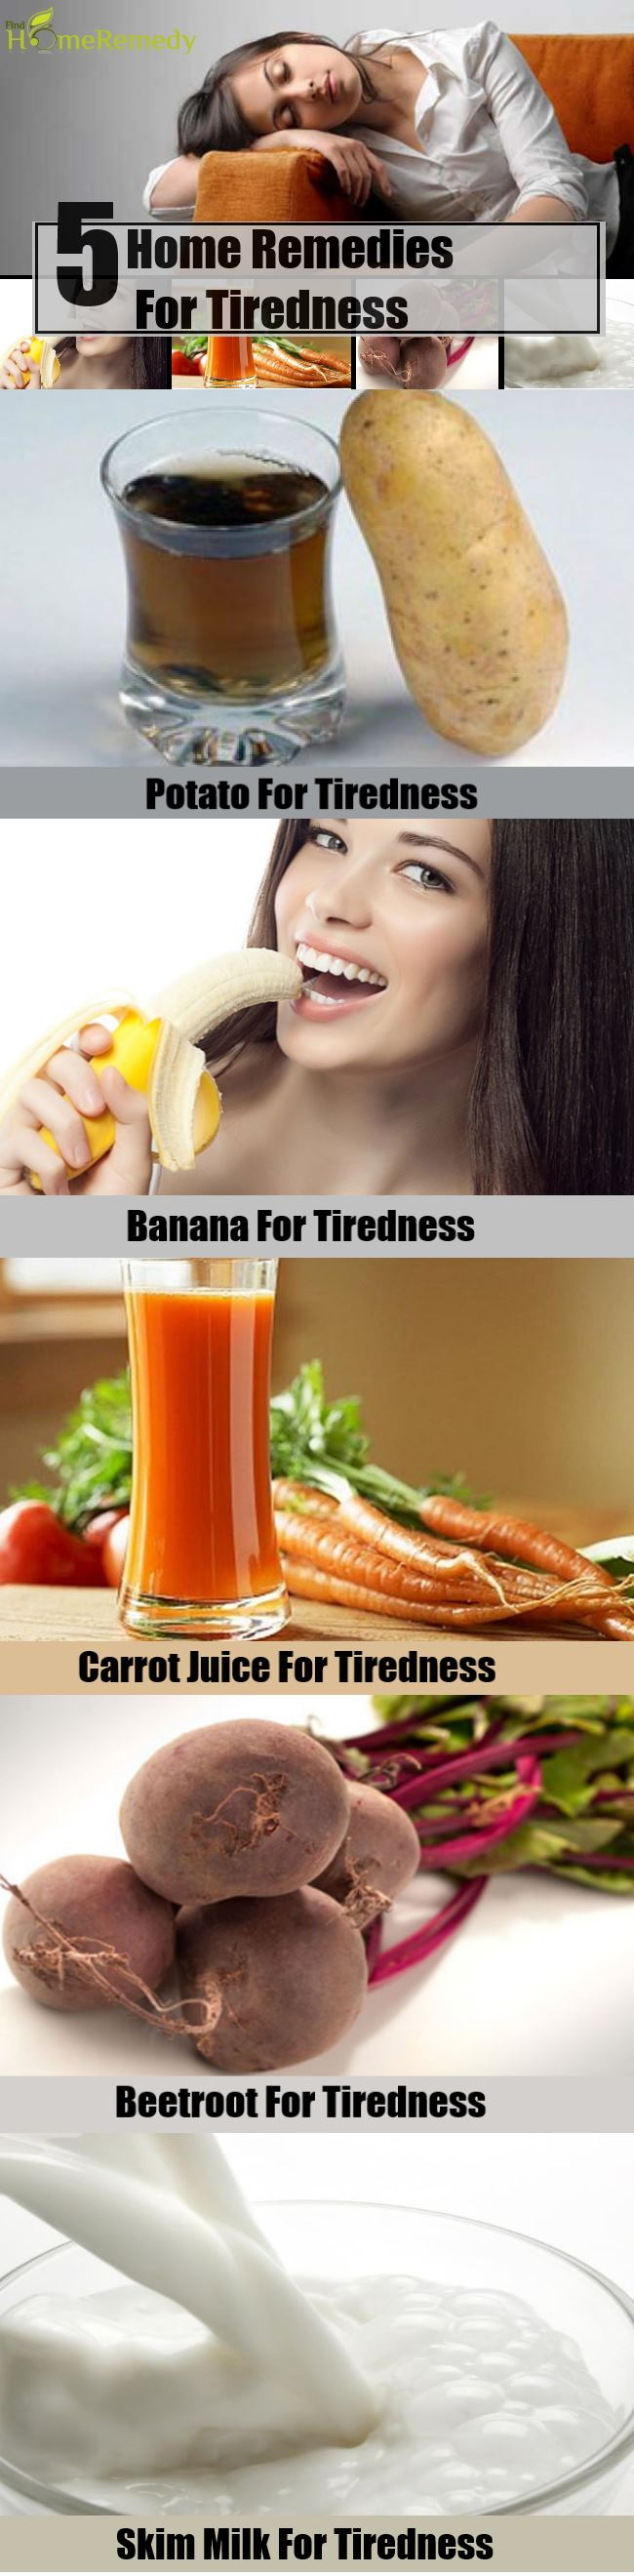 5 Home Remedies For Tiredness